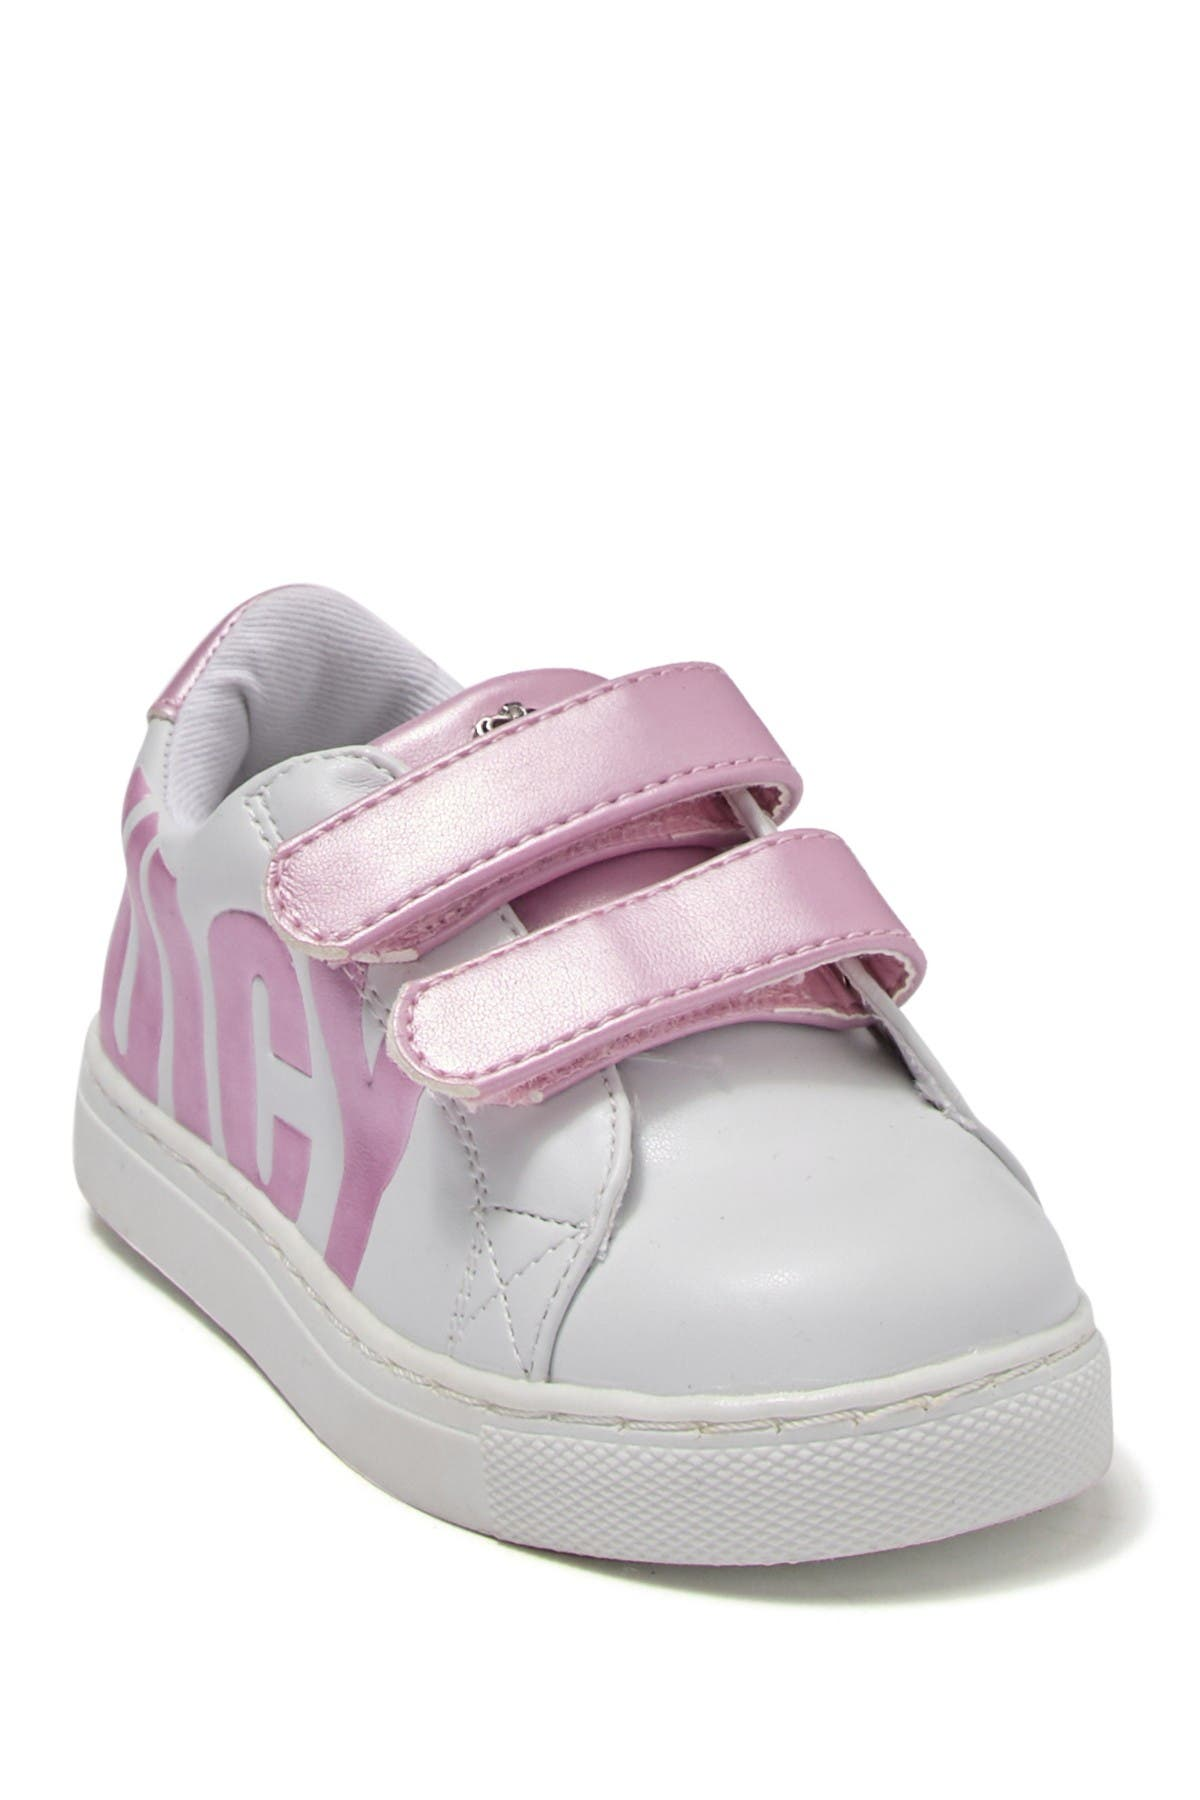 Image of Juicy Couture Modesto Casual Sneaker